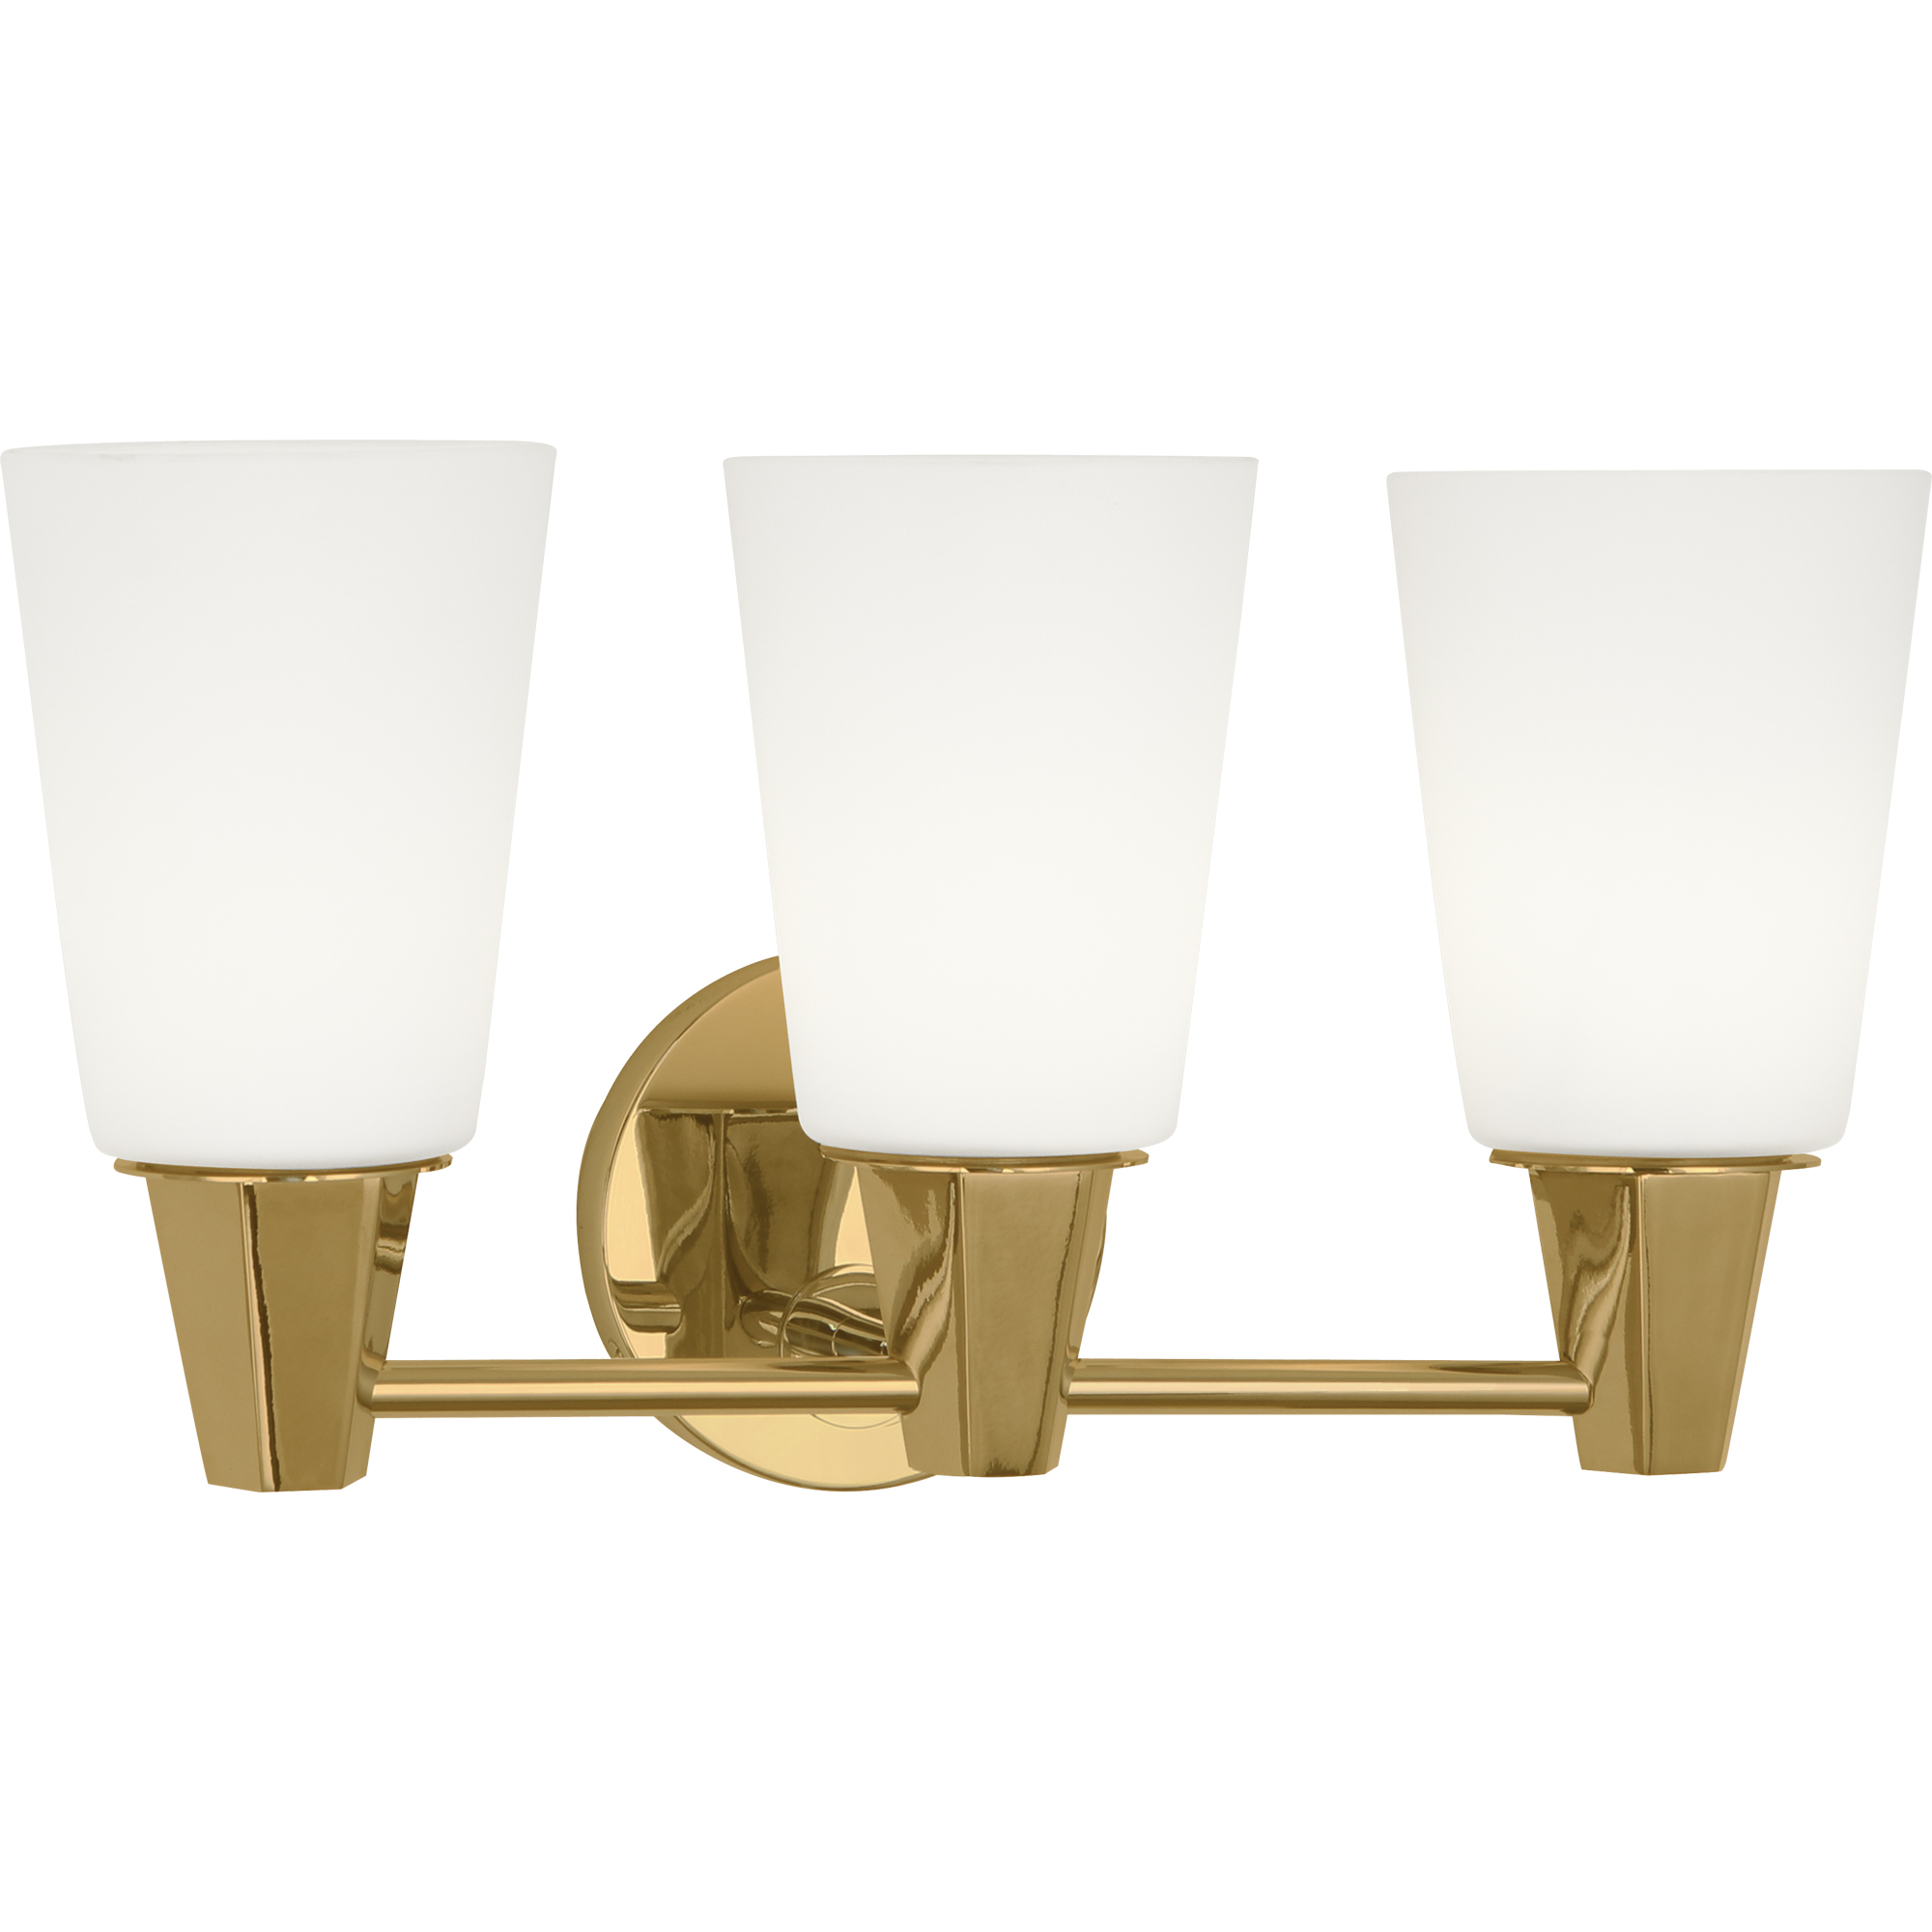 Wheatley Wall Sconce Style #256F